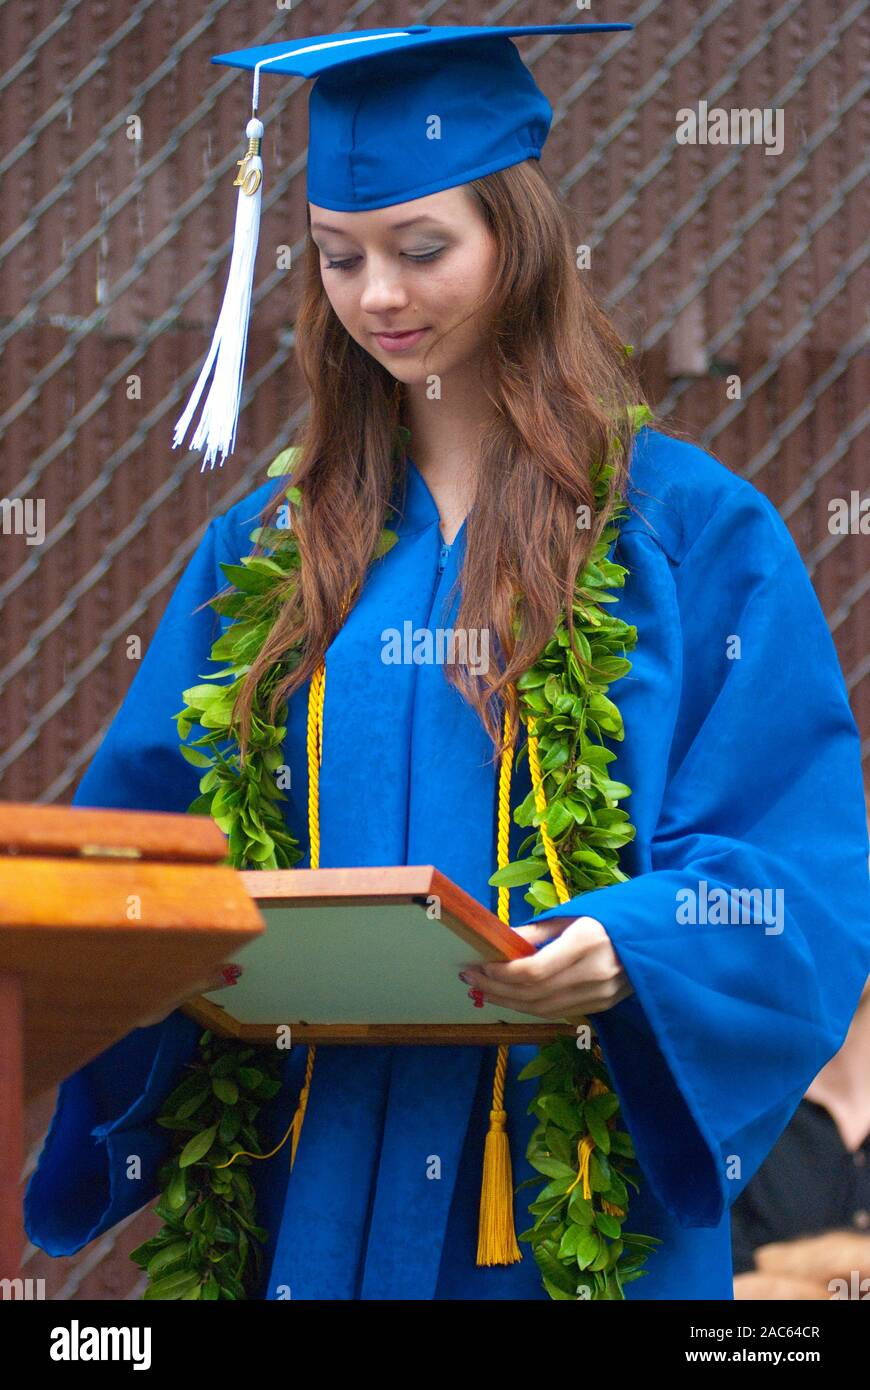 High school graduation from Academy of the Pacific, now a closed private school, in Honolulu, on the island of O'ahu. Stock Photo